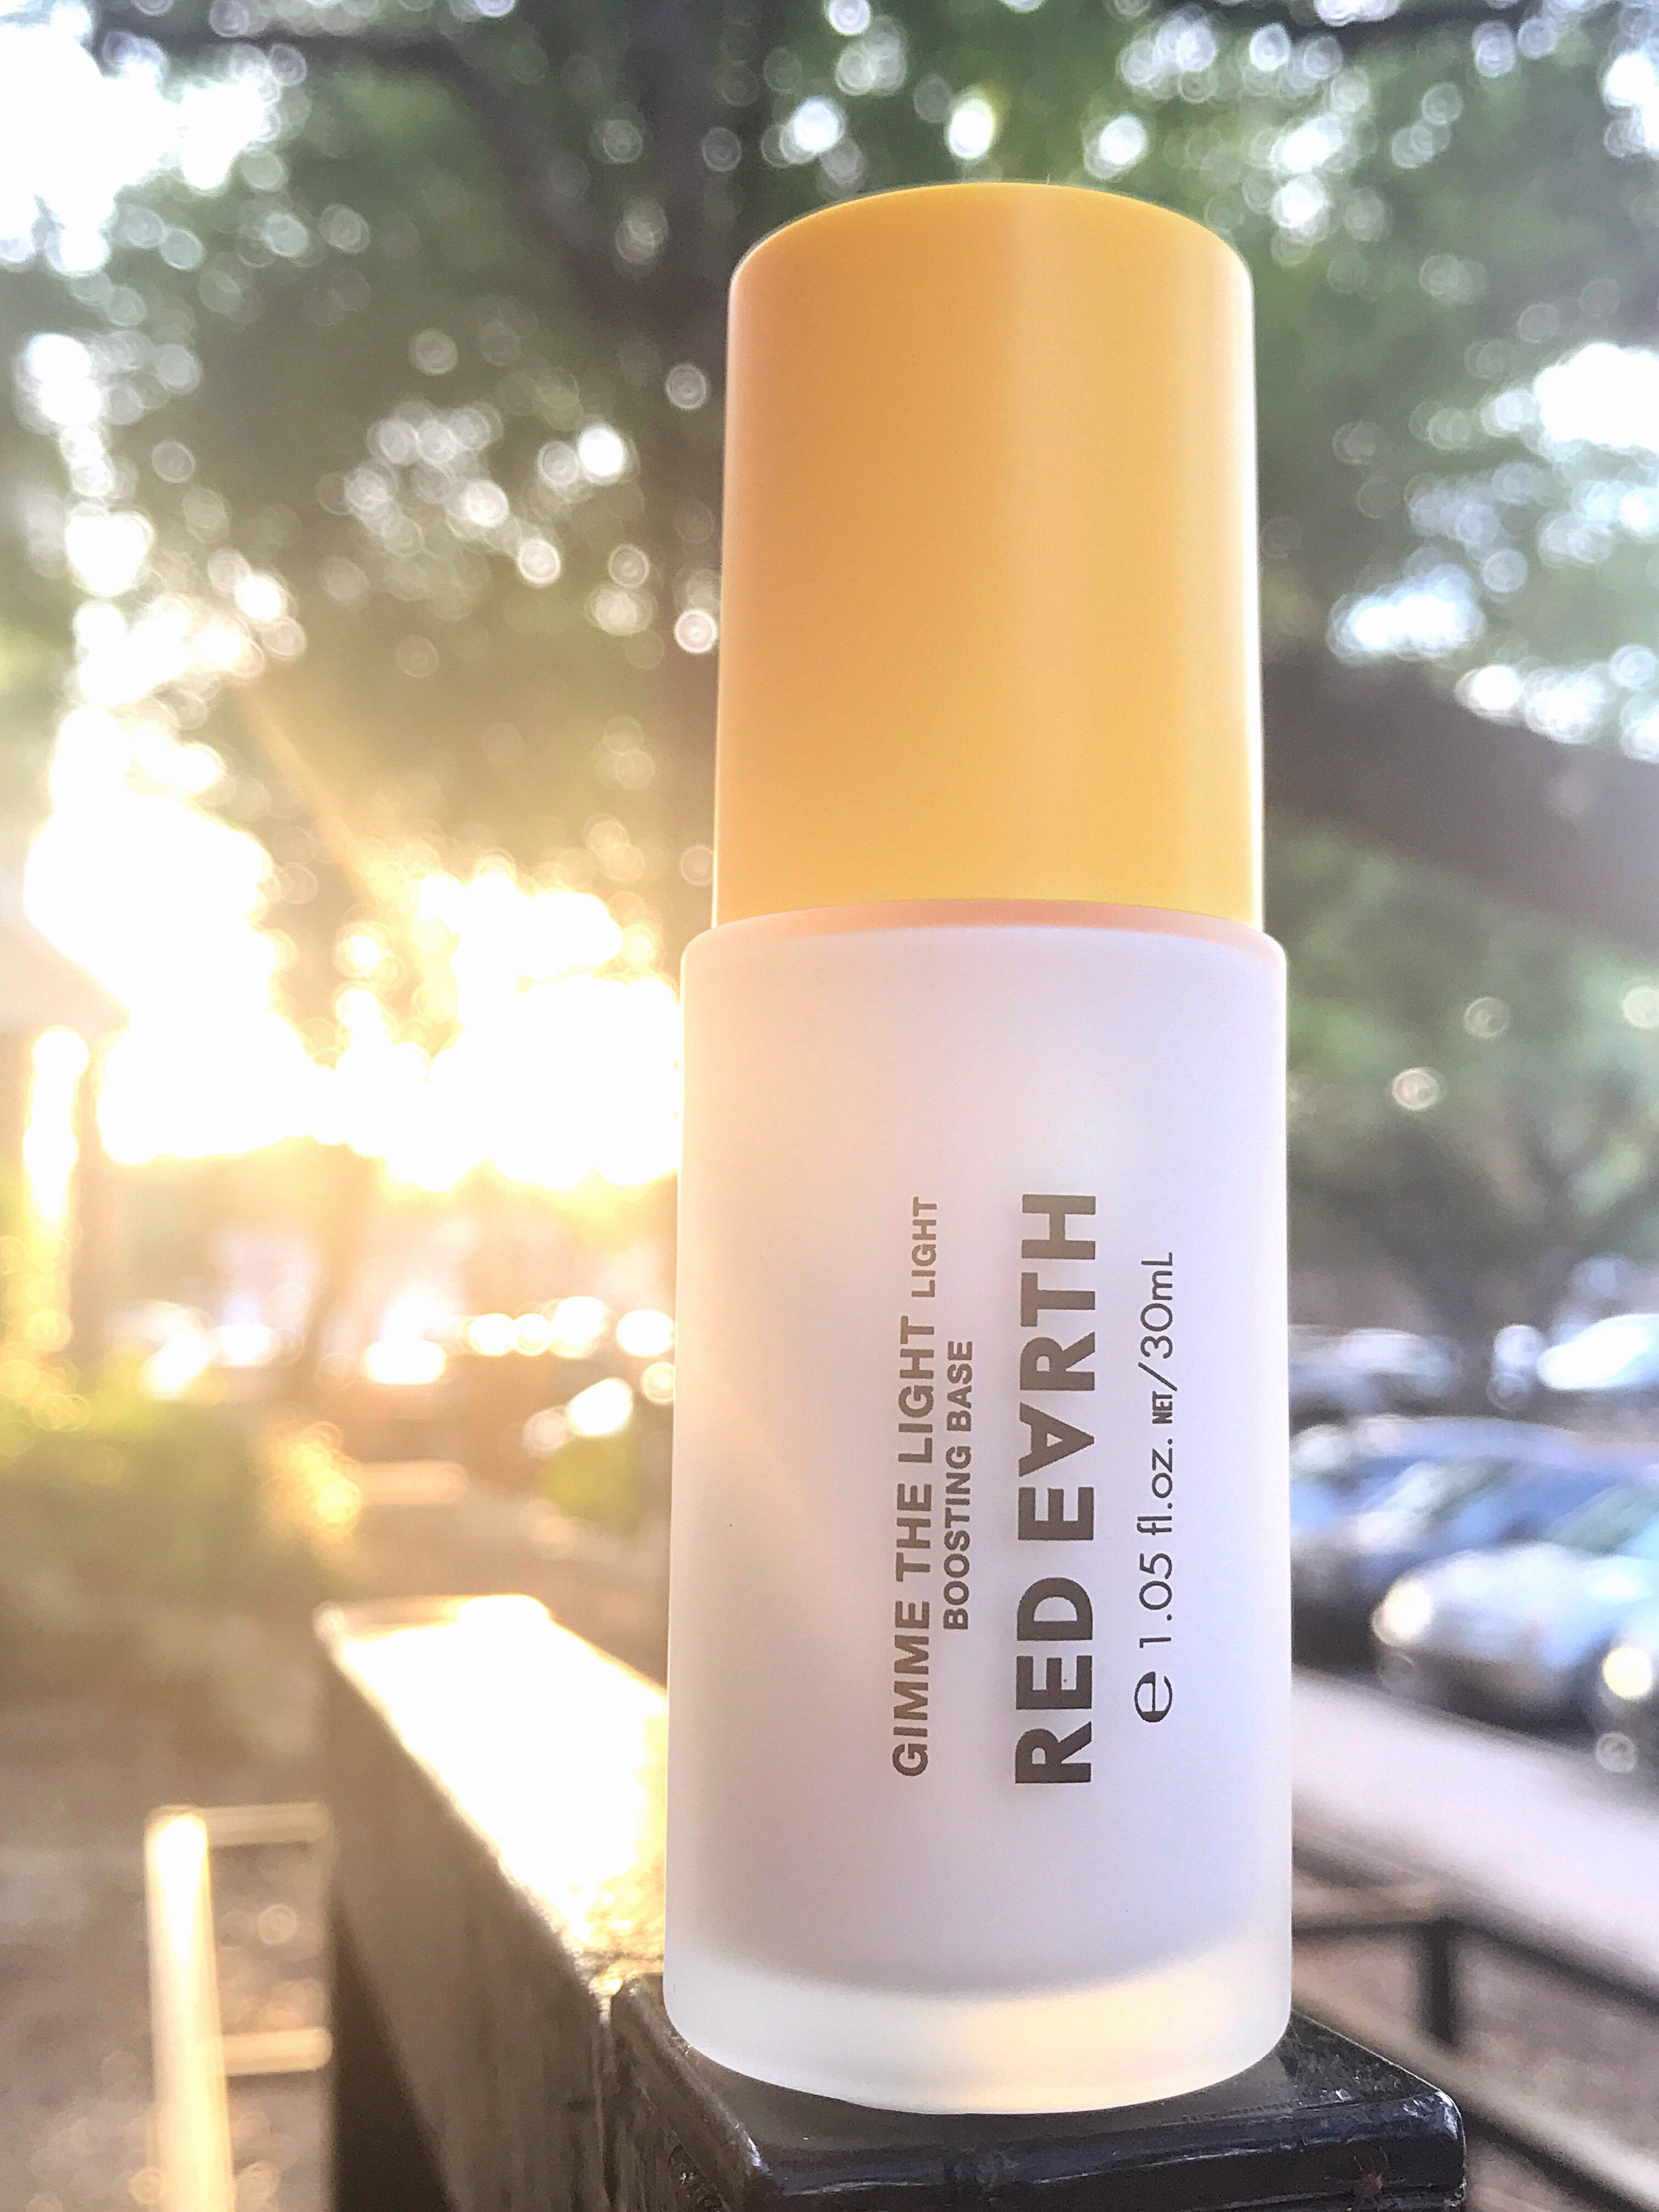 natalie-merola-of-ginger-me-glam-beauty-review-for-red-earth-beauty1.jpg